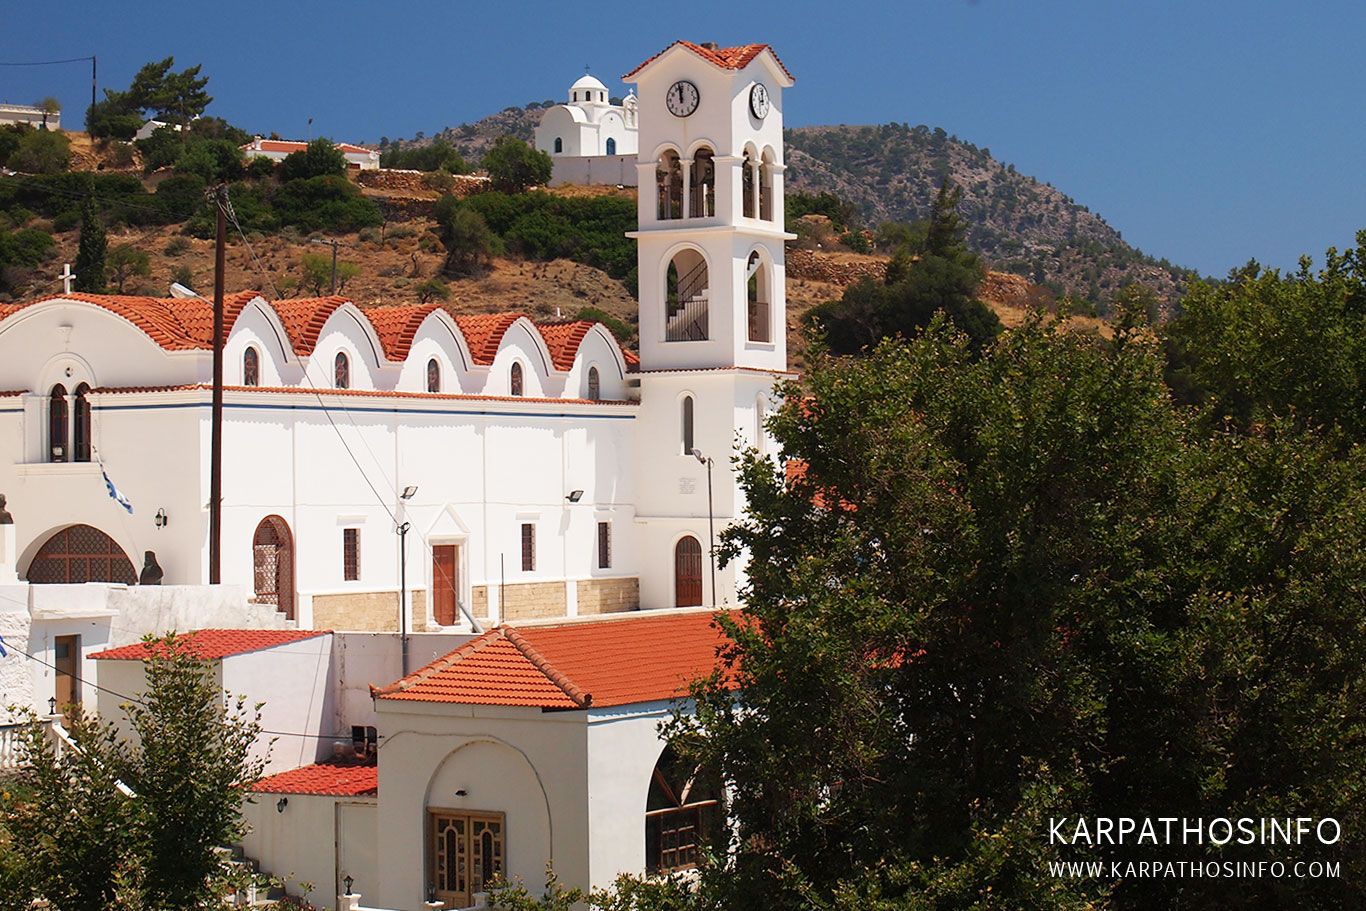 Church in Aperi village, Karpathos